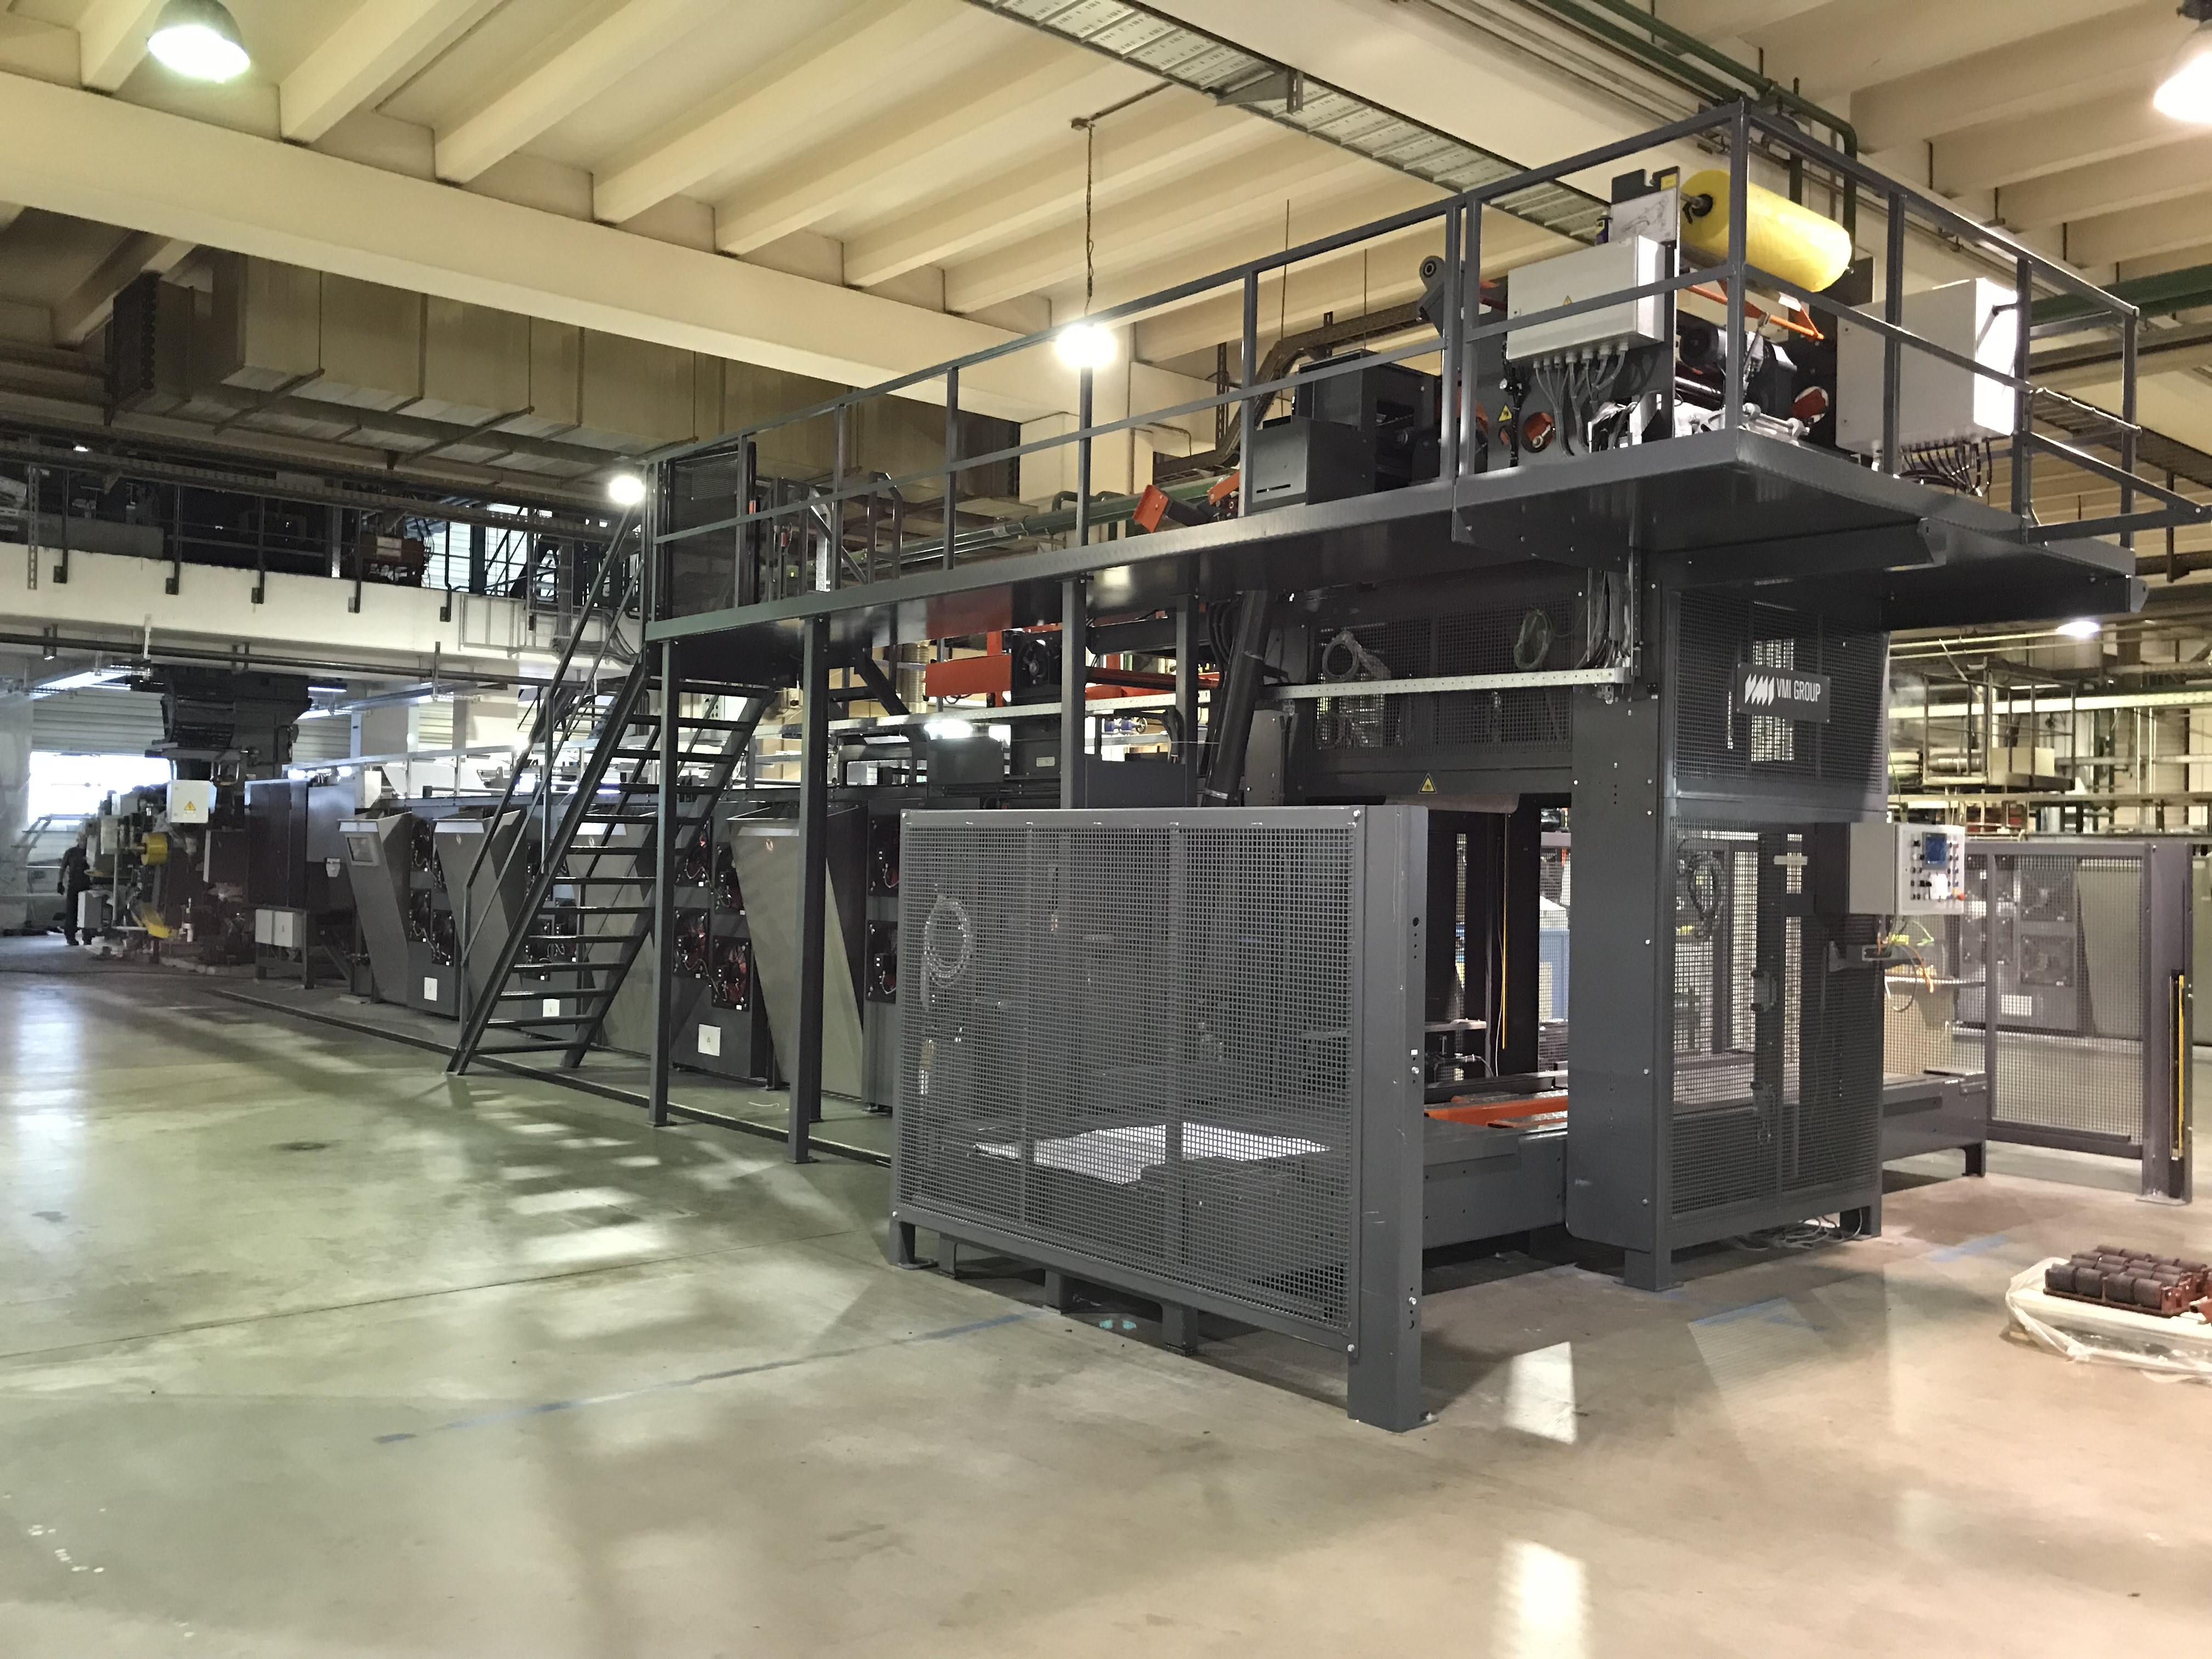 The new line at PTE in Lutherstadt Wittenberg, equipped with a 320 l kneader, enables more efficient technology with high quality for large-volume products. (Source: PTE)